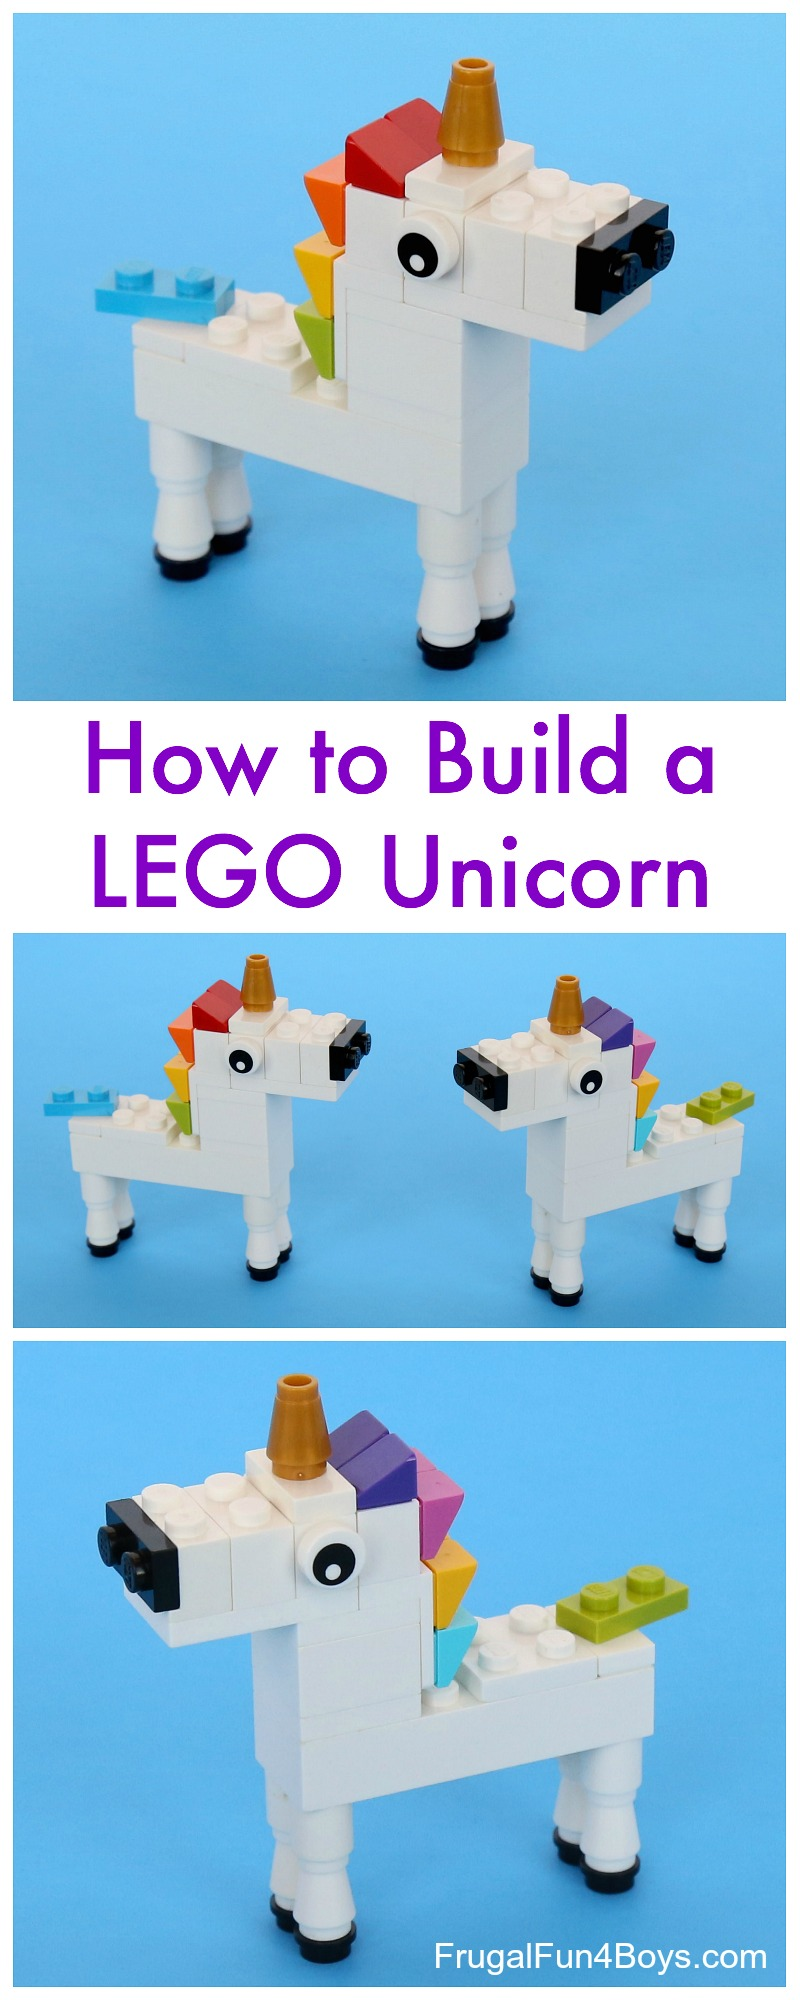 Lego Unicorn Building Instructions Frugal Fun For Boys And Girls